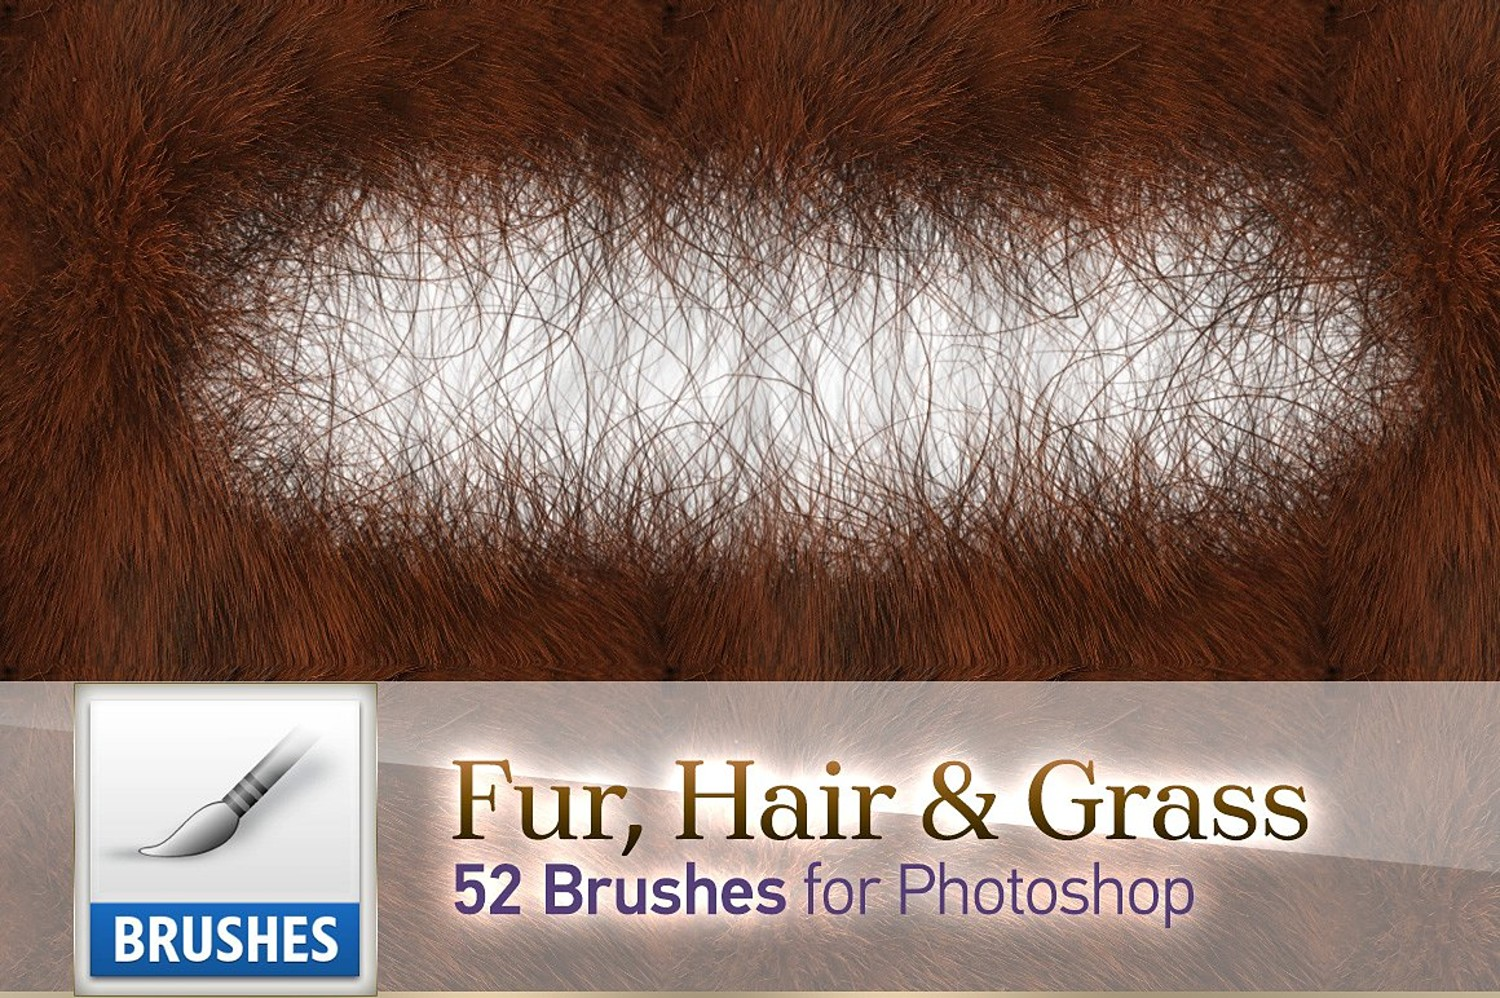 38. Fur, Hair & Grass Brushes